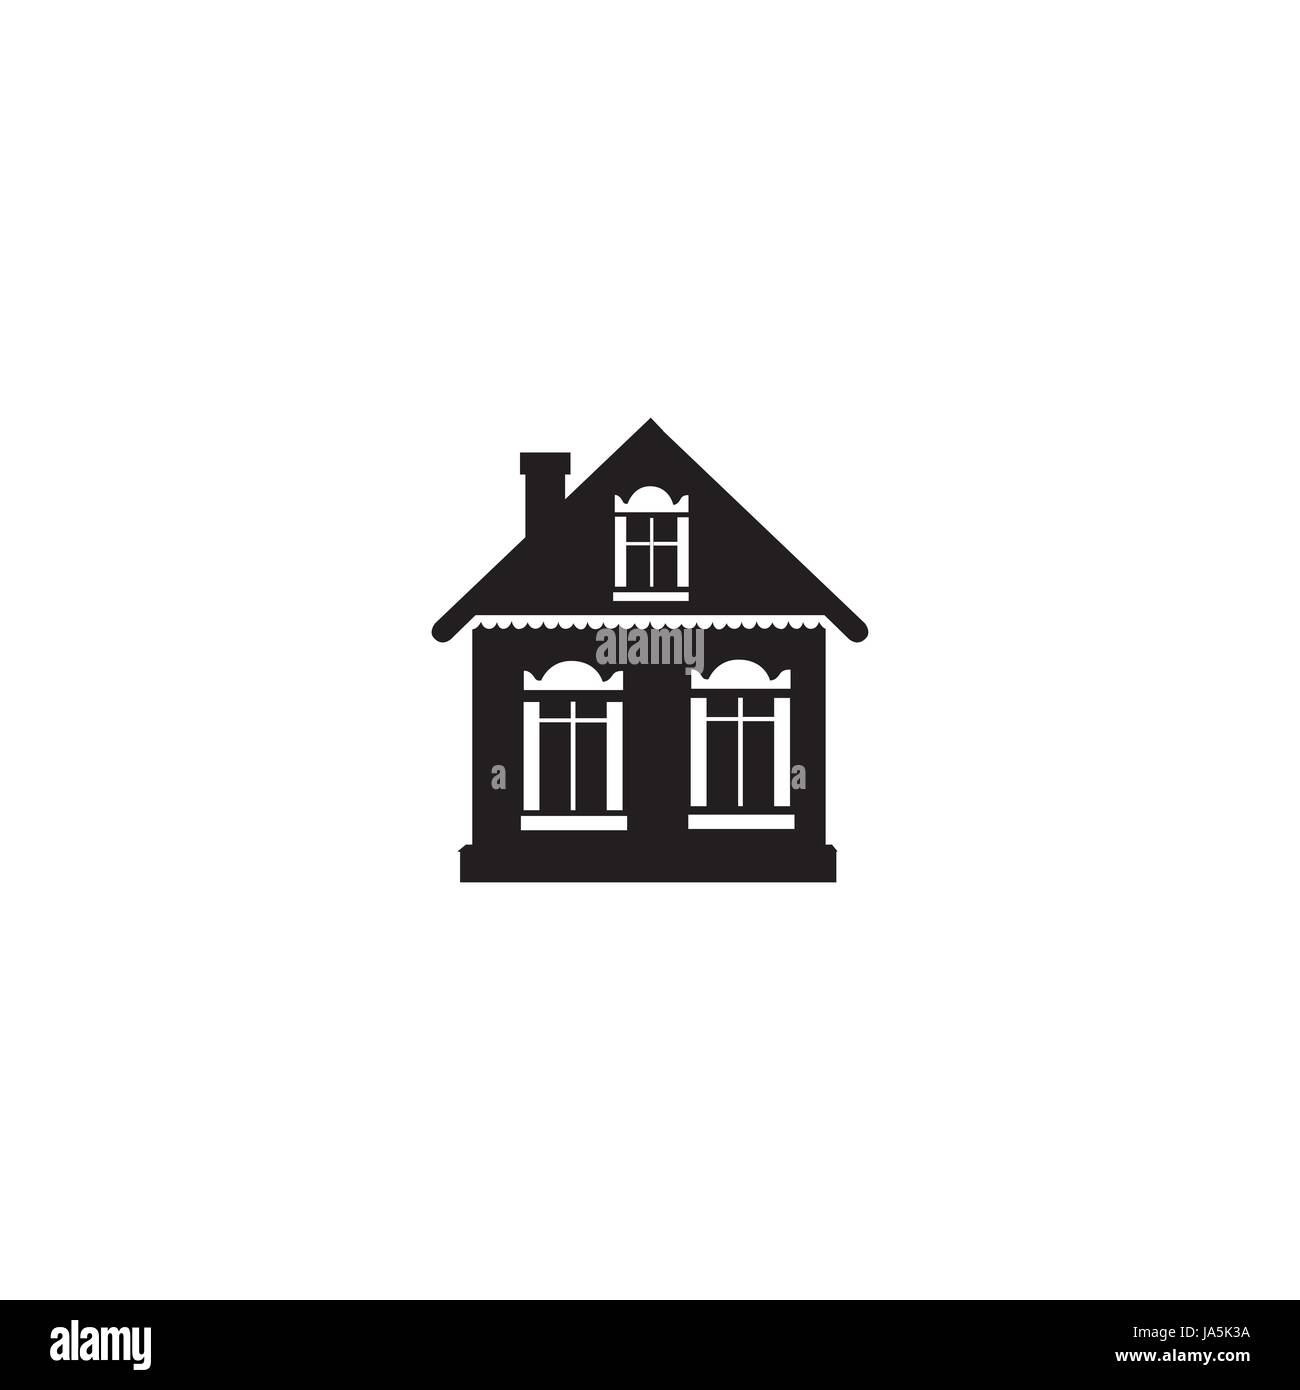 Cabinet sign. Building facade icon. Village house silhouette isolated - Stock Vector